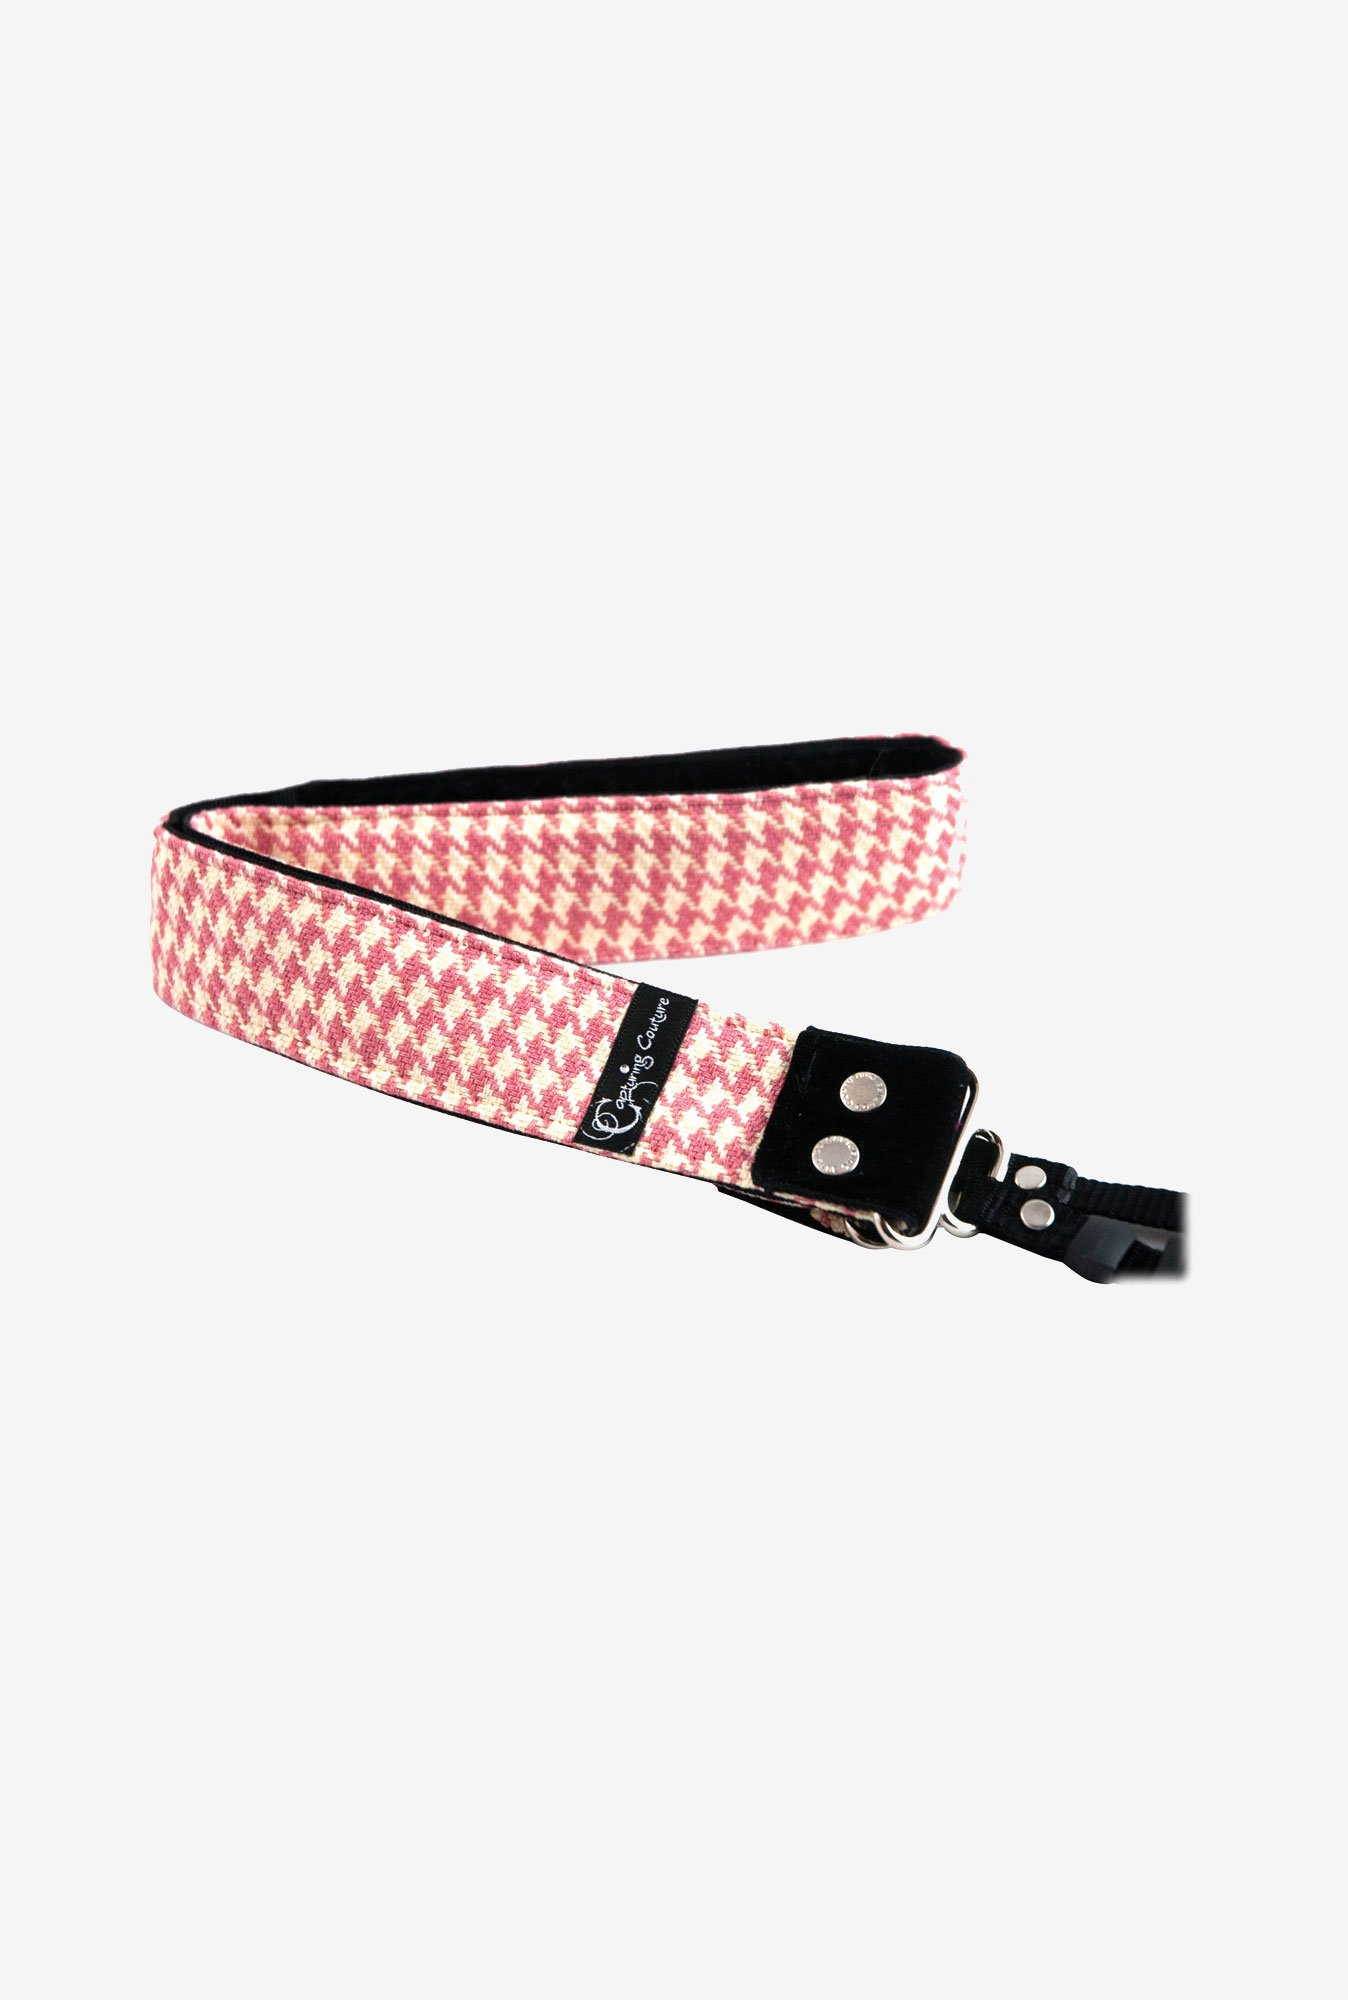 Capturing Couture SLR15-CHPK Charlotte Camera Strap (Pink)